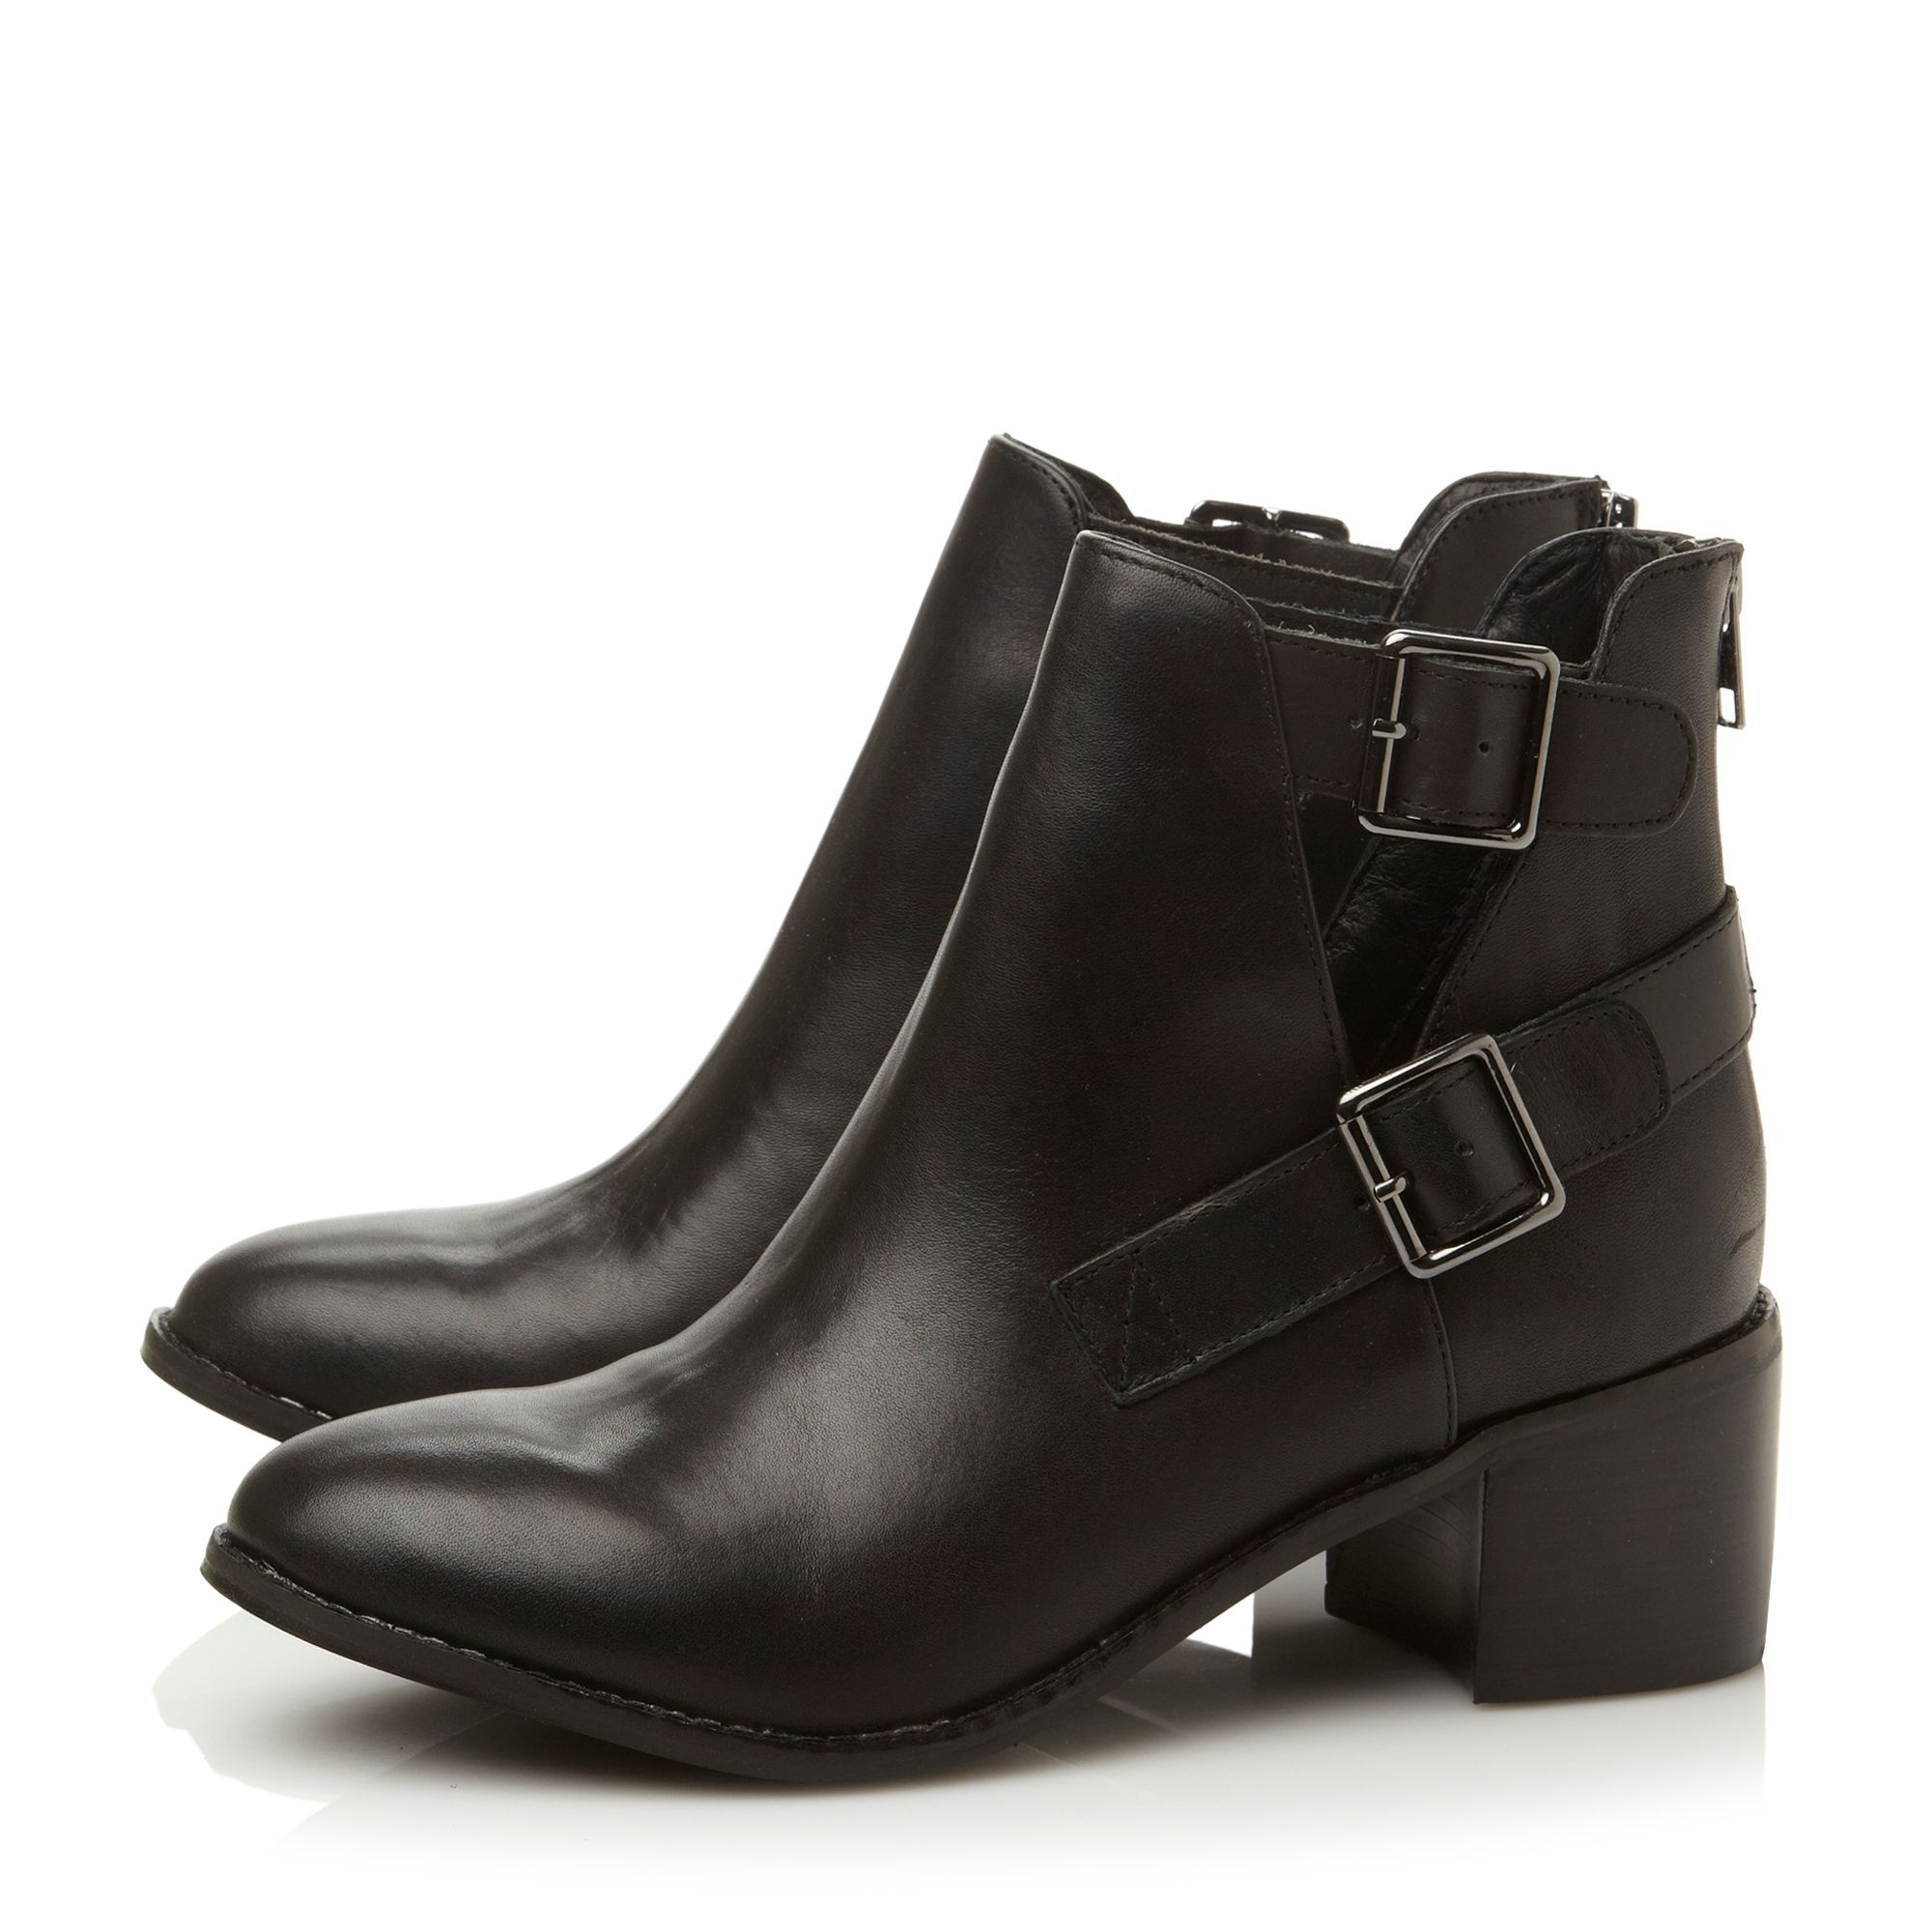 Peeper-cut out side boots